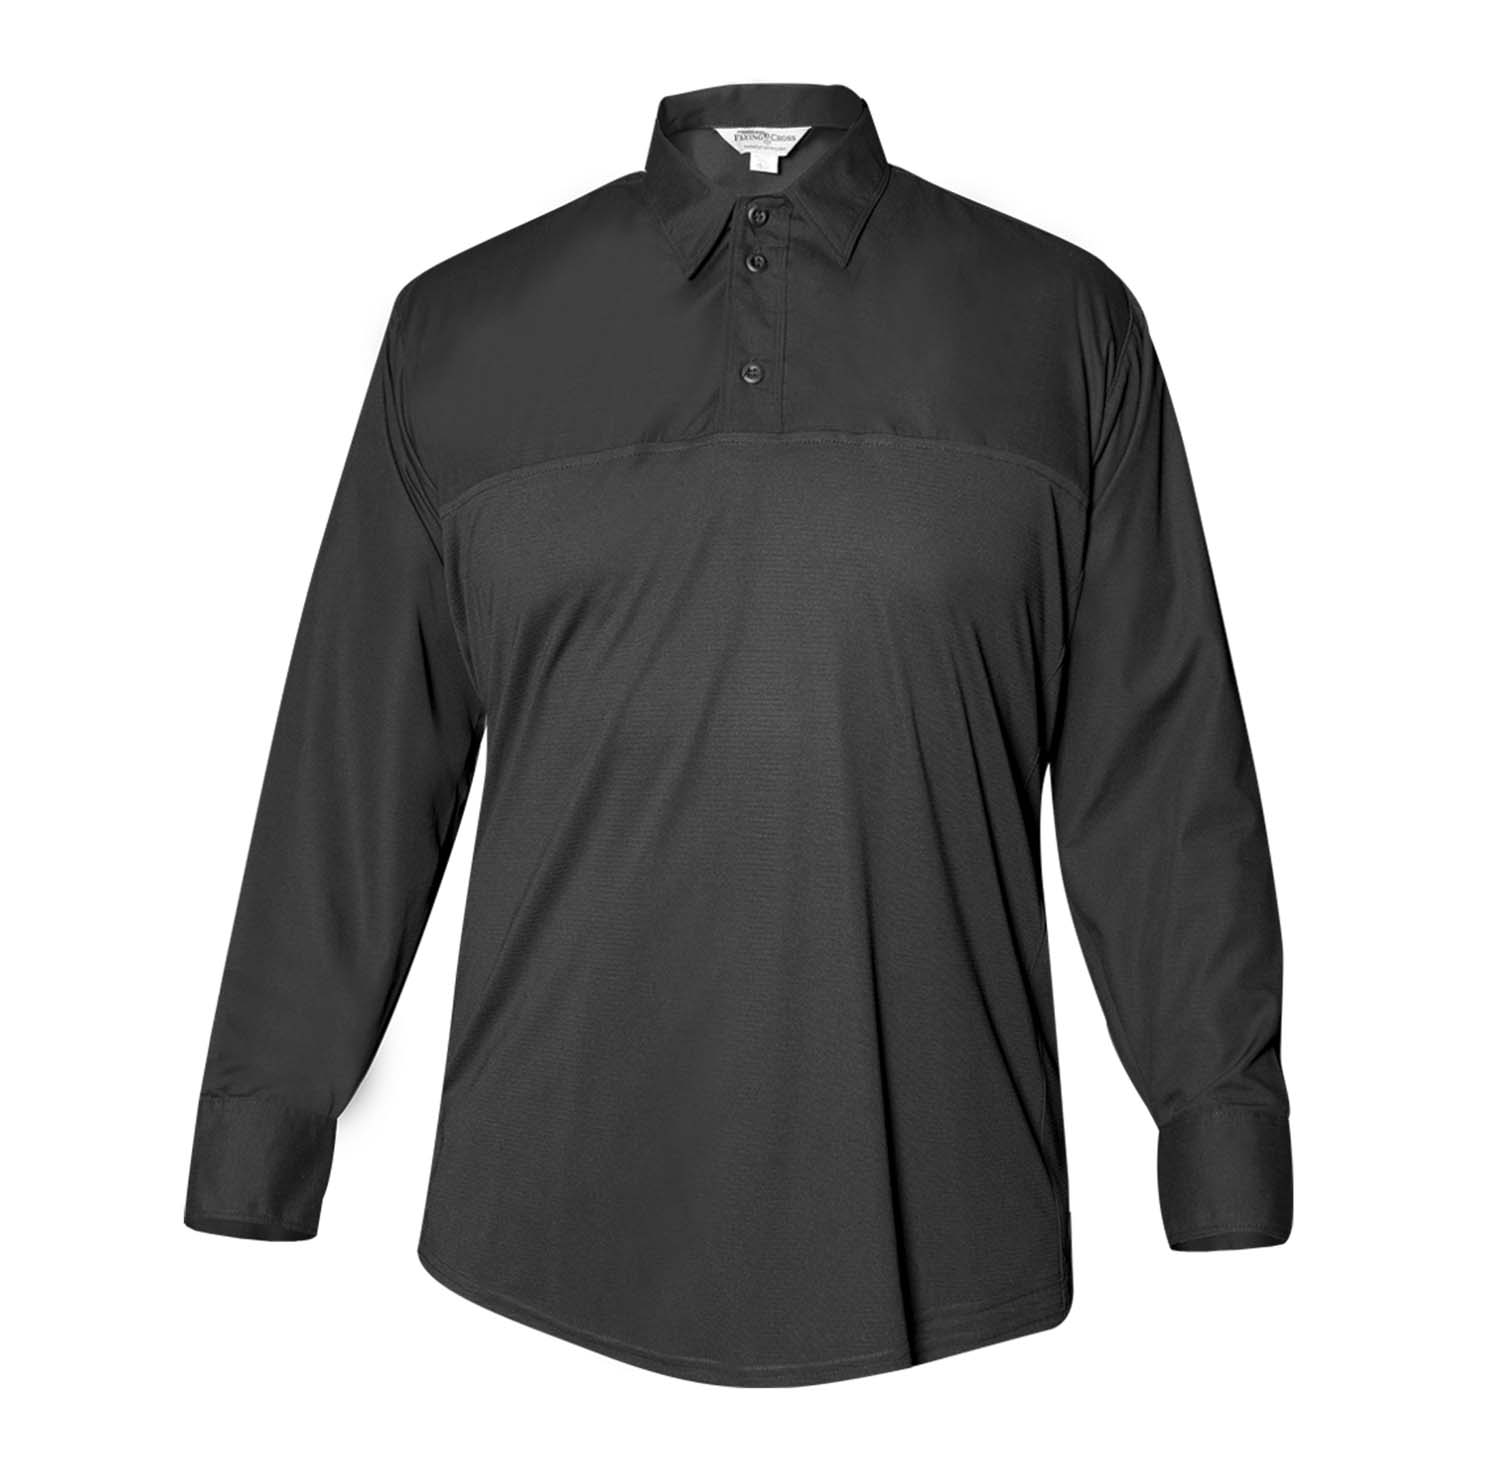 Flying Cross Men's Long Sleeve Polyester Hybrid Performance